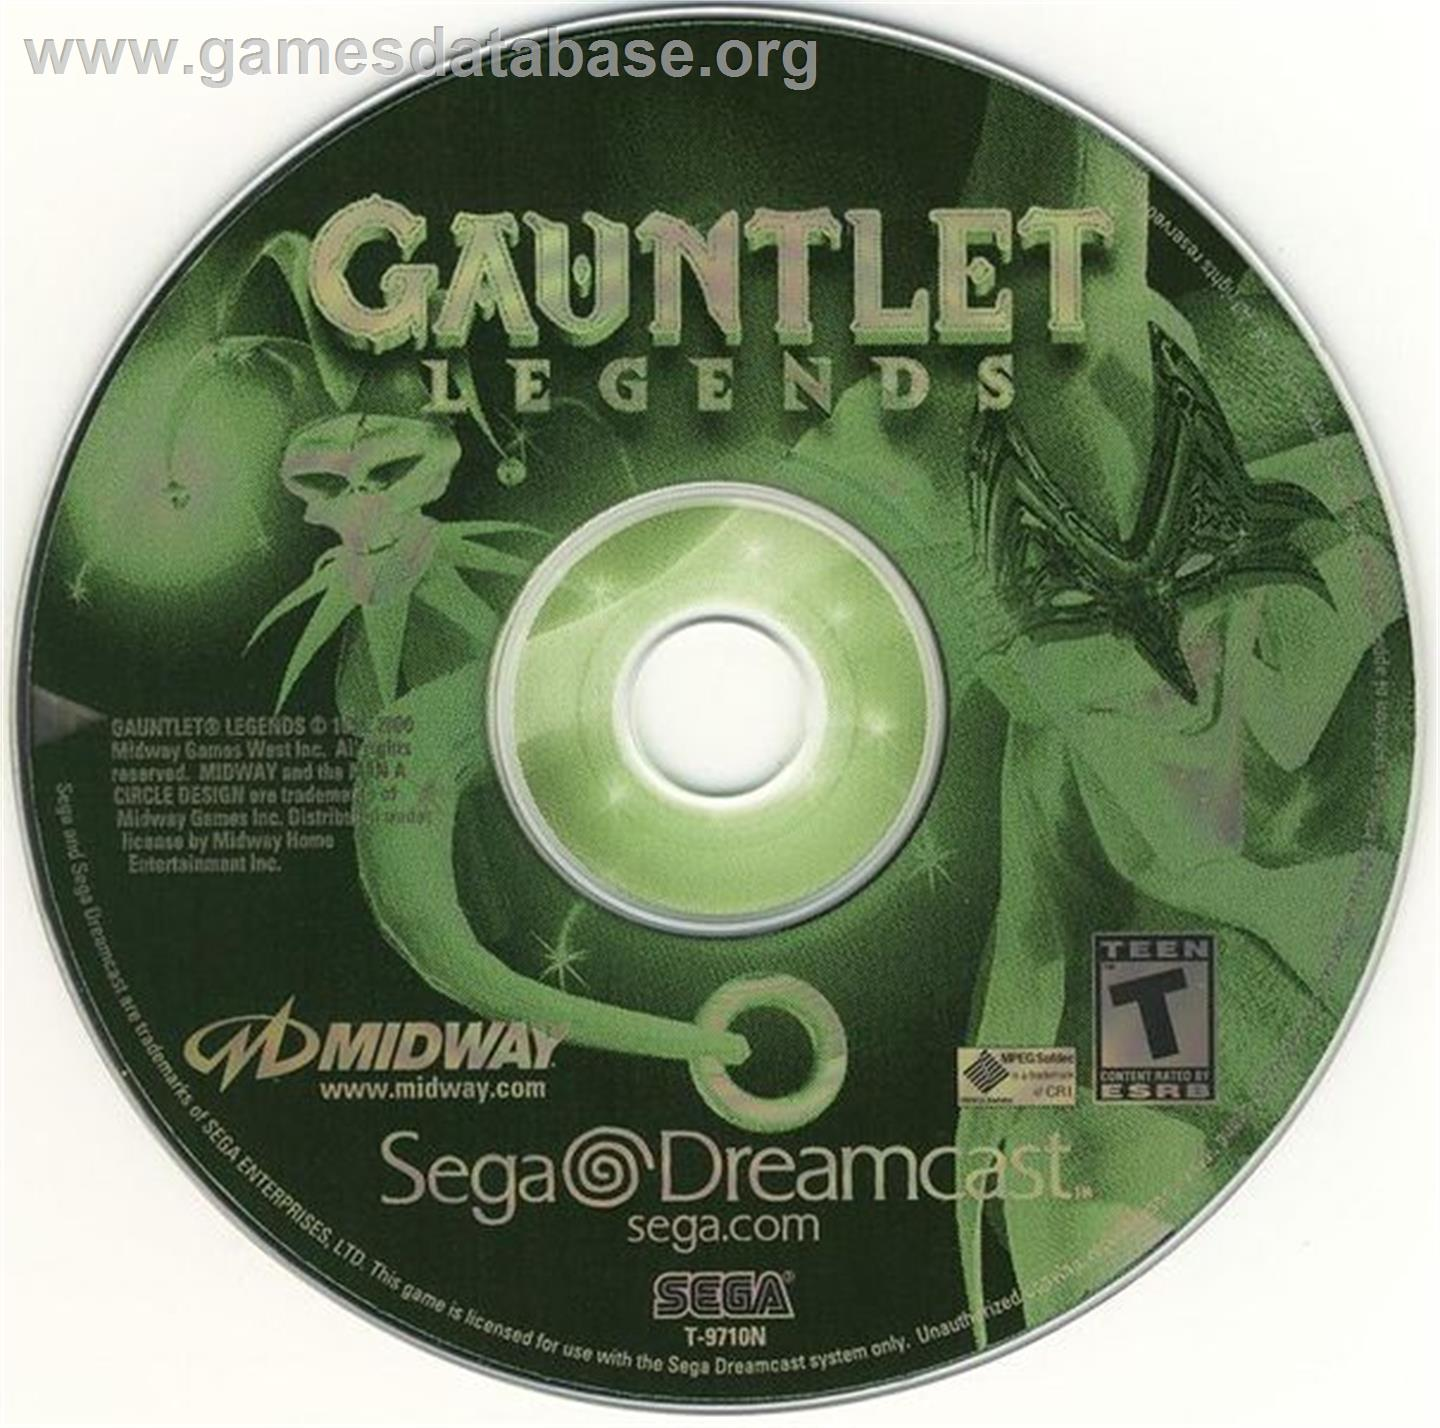 Gauntlet Legends - Sega Dreamcast - Artwork - CD